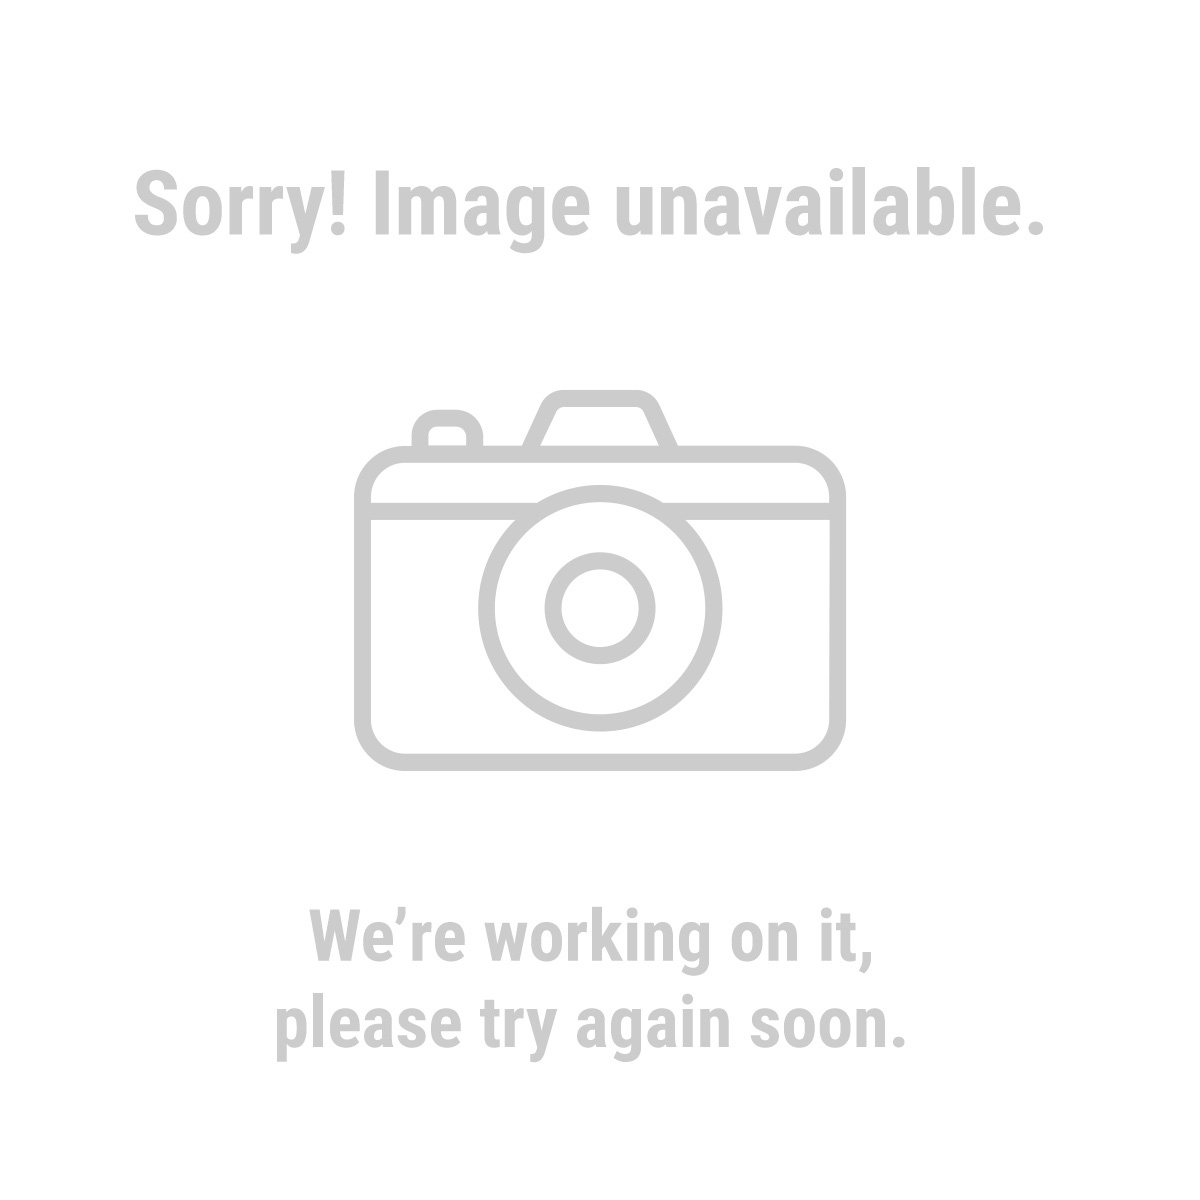 U.S. General 90320 13 Drawer Red Industrial Quality Roller Cabinet